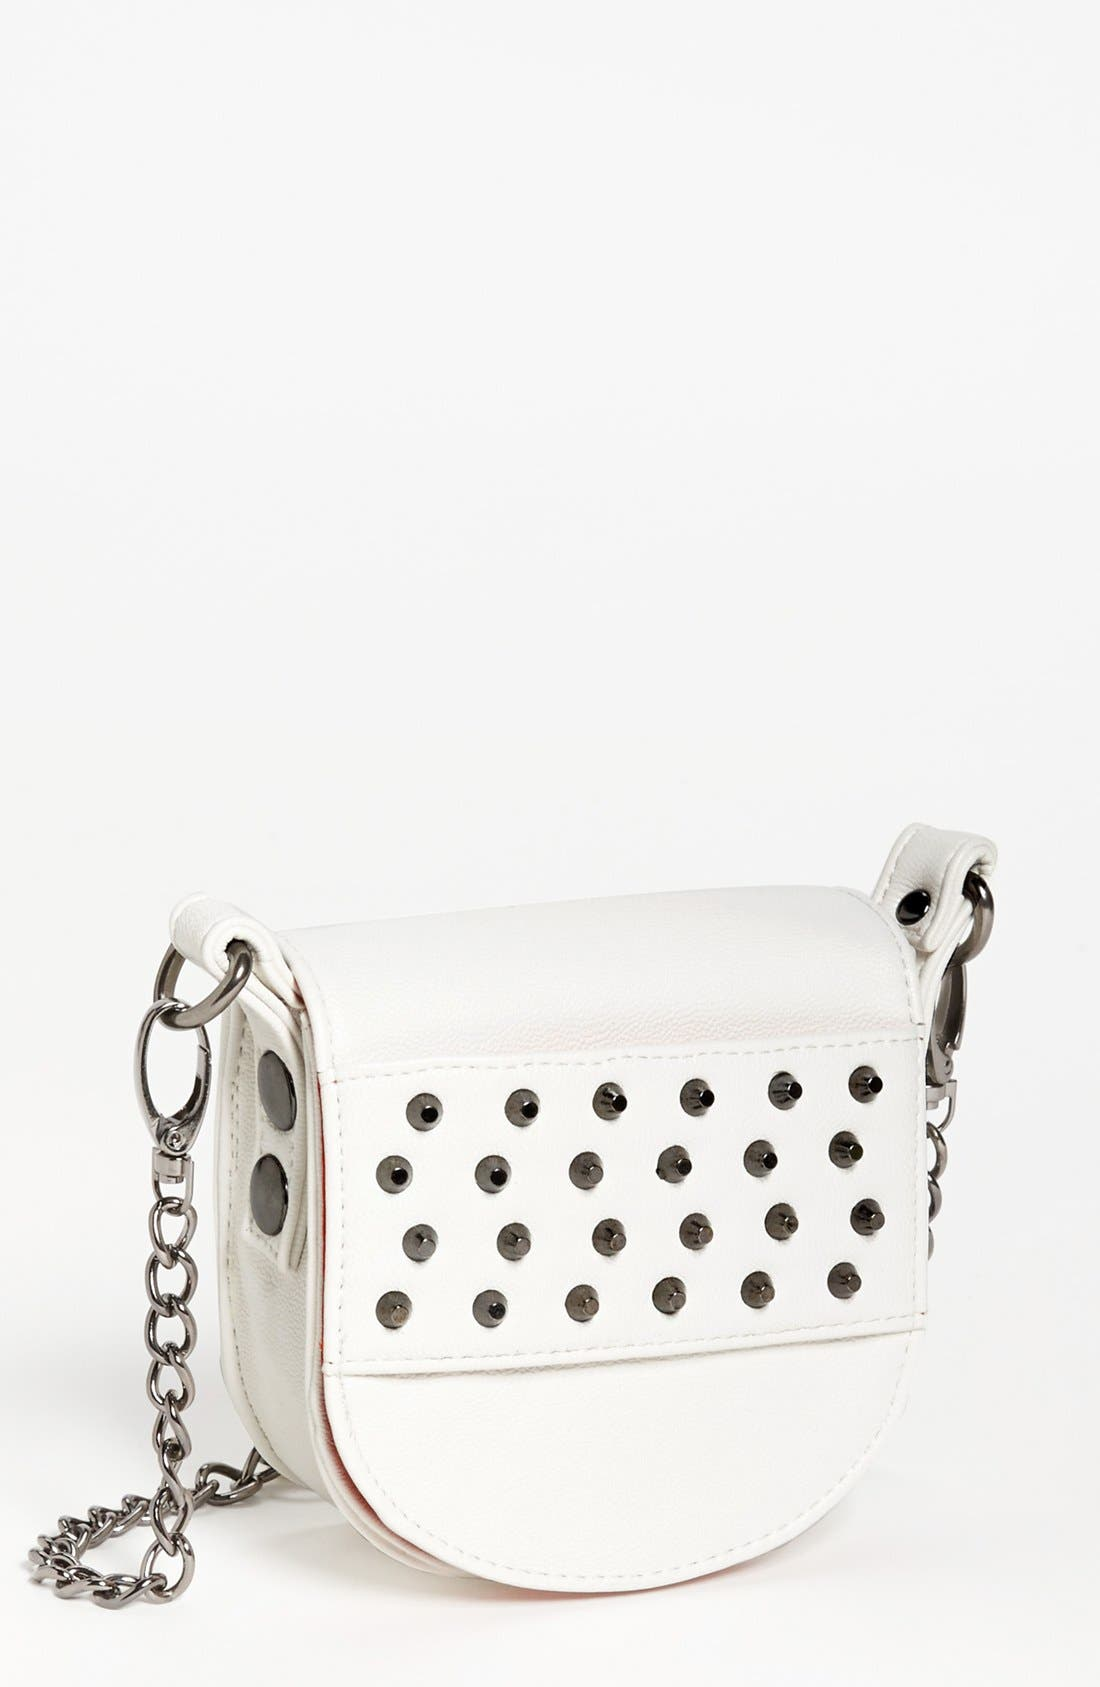 Main Image - POVERTY FLATS by rian Studded Faux Leather Mini Crossbody Bag